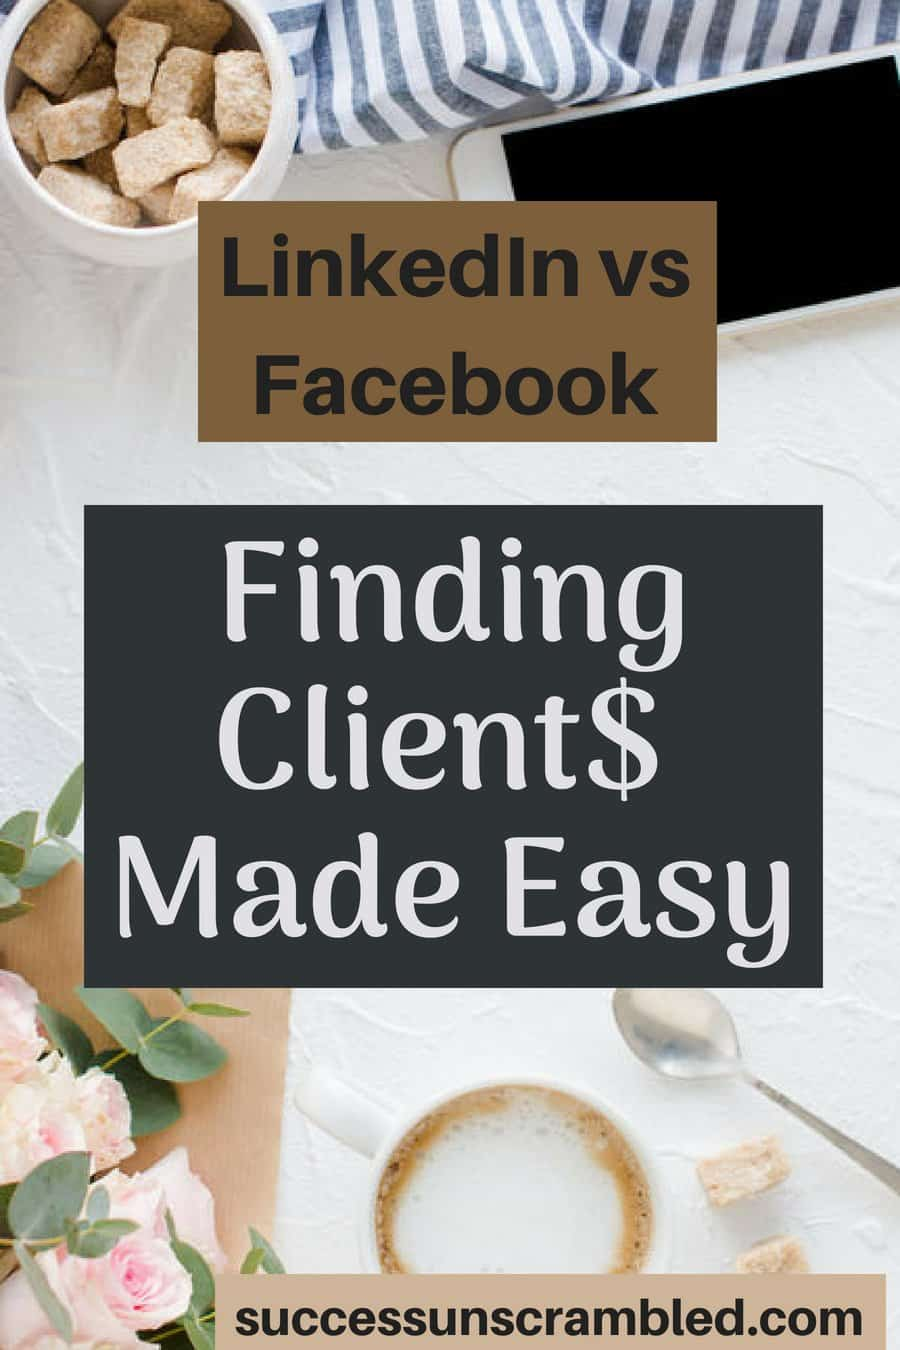 LinkedIn vs Facebook - Finding Client$ Made Easy